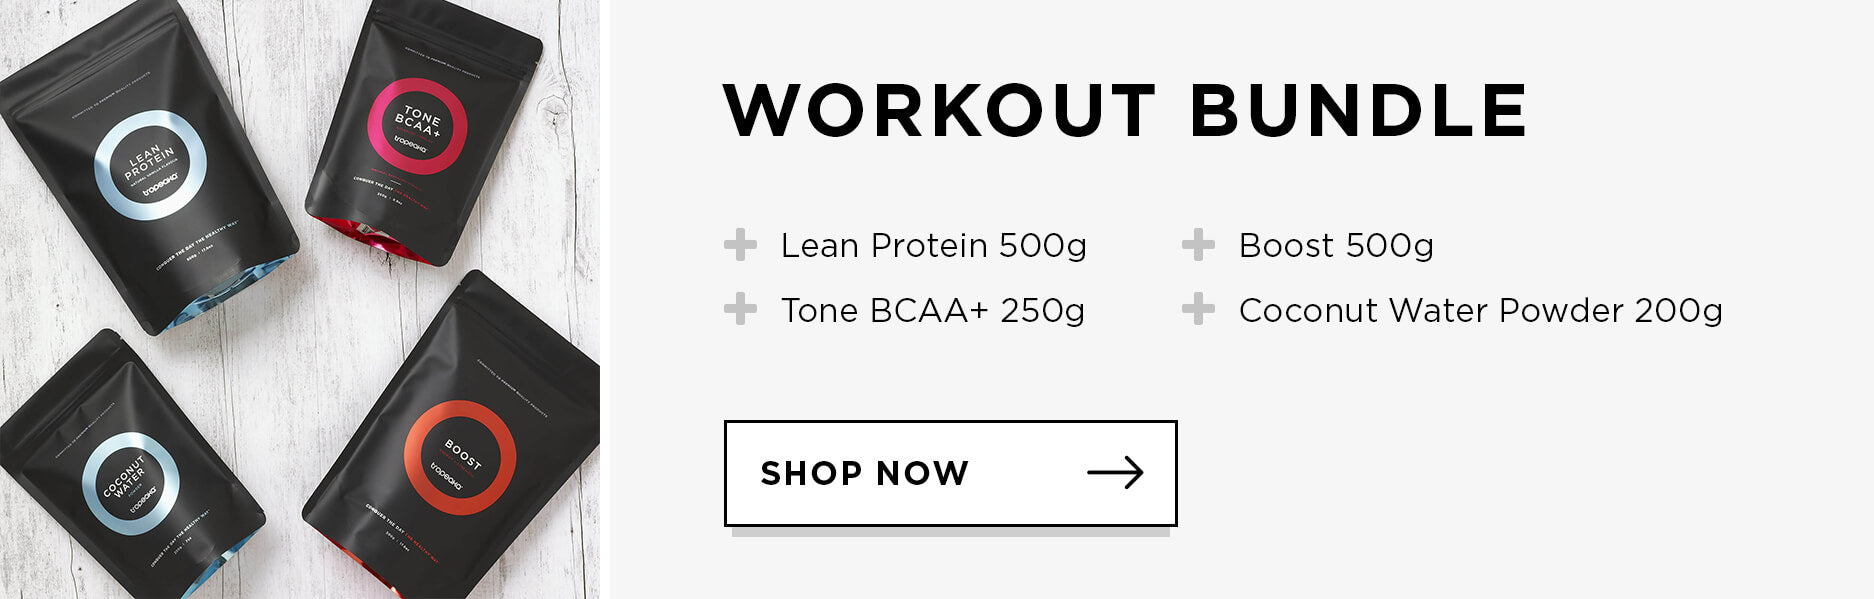 Workout Bundle